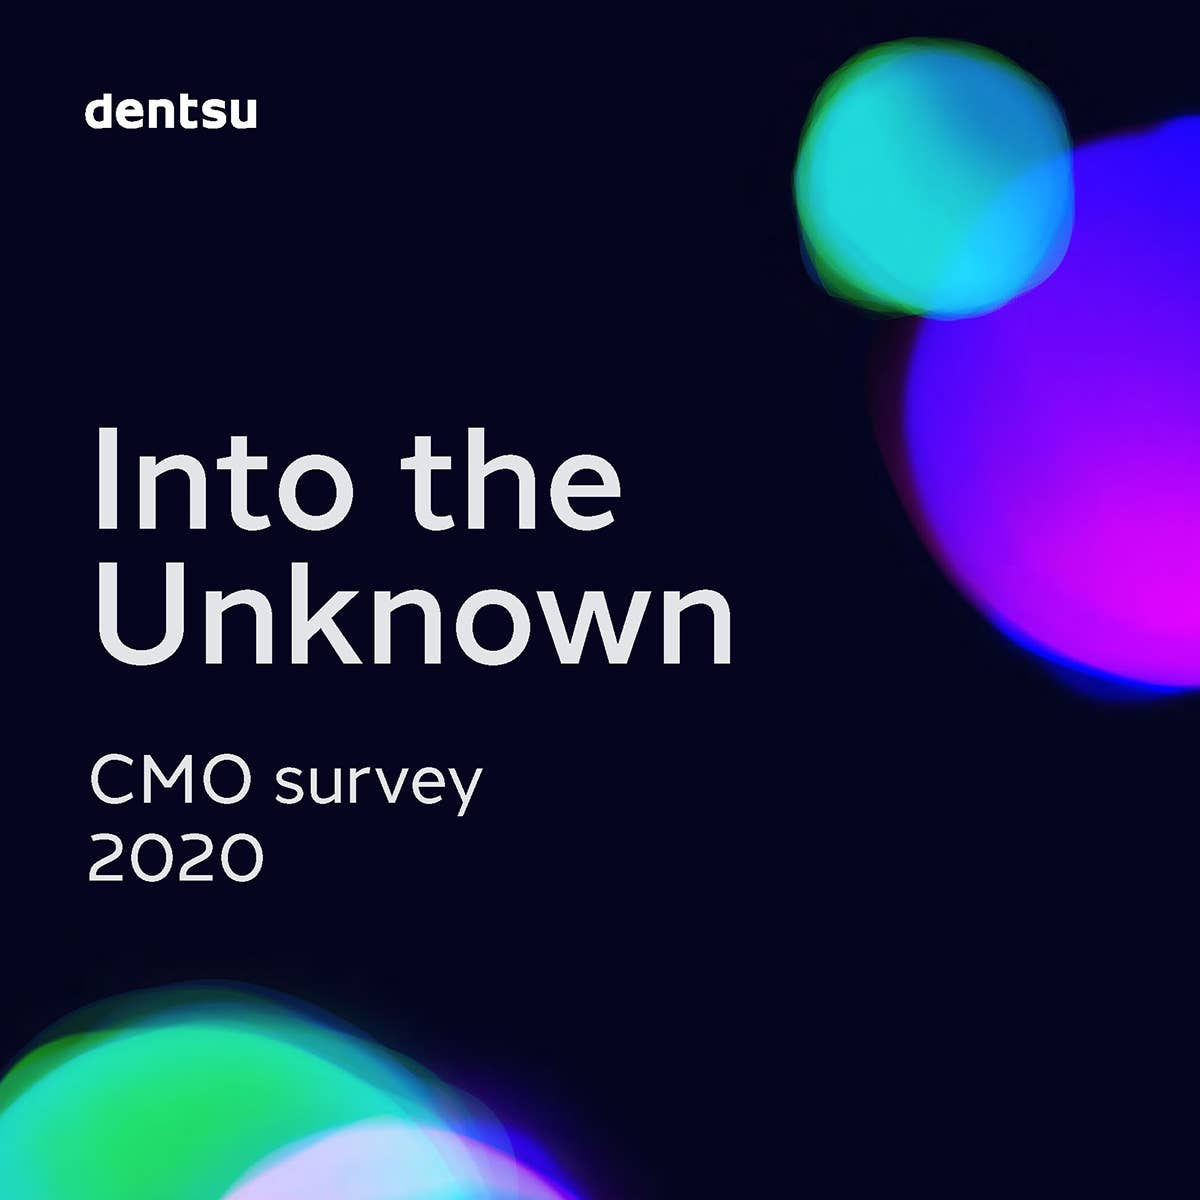 dentsu international's CMO Survey 2020